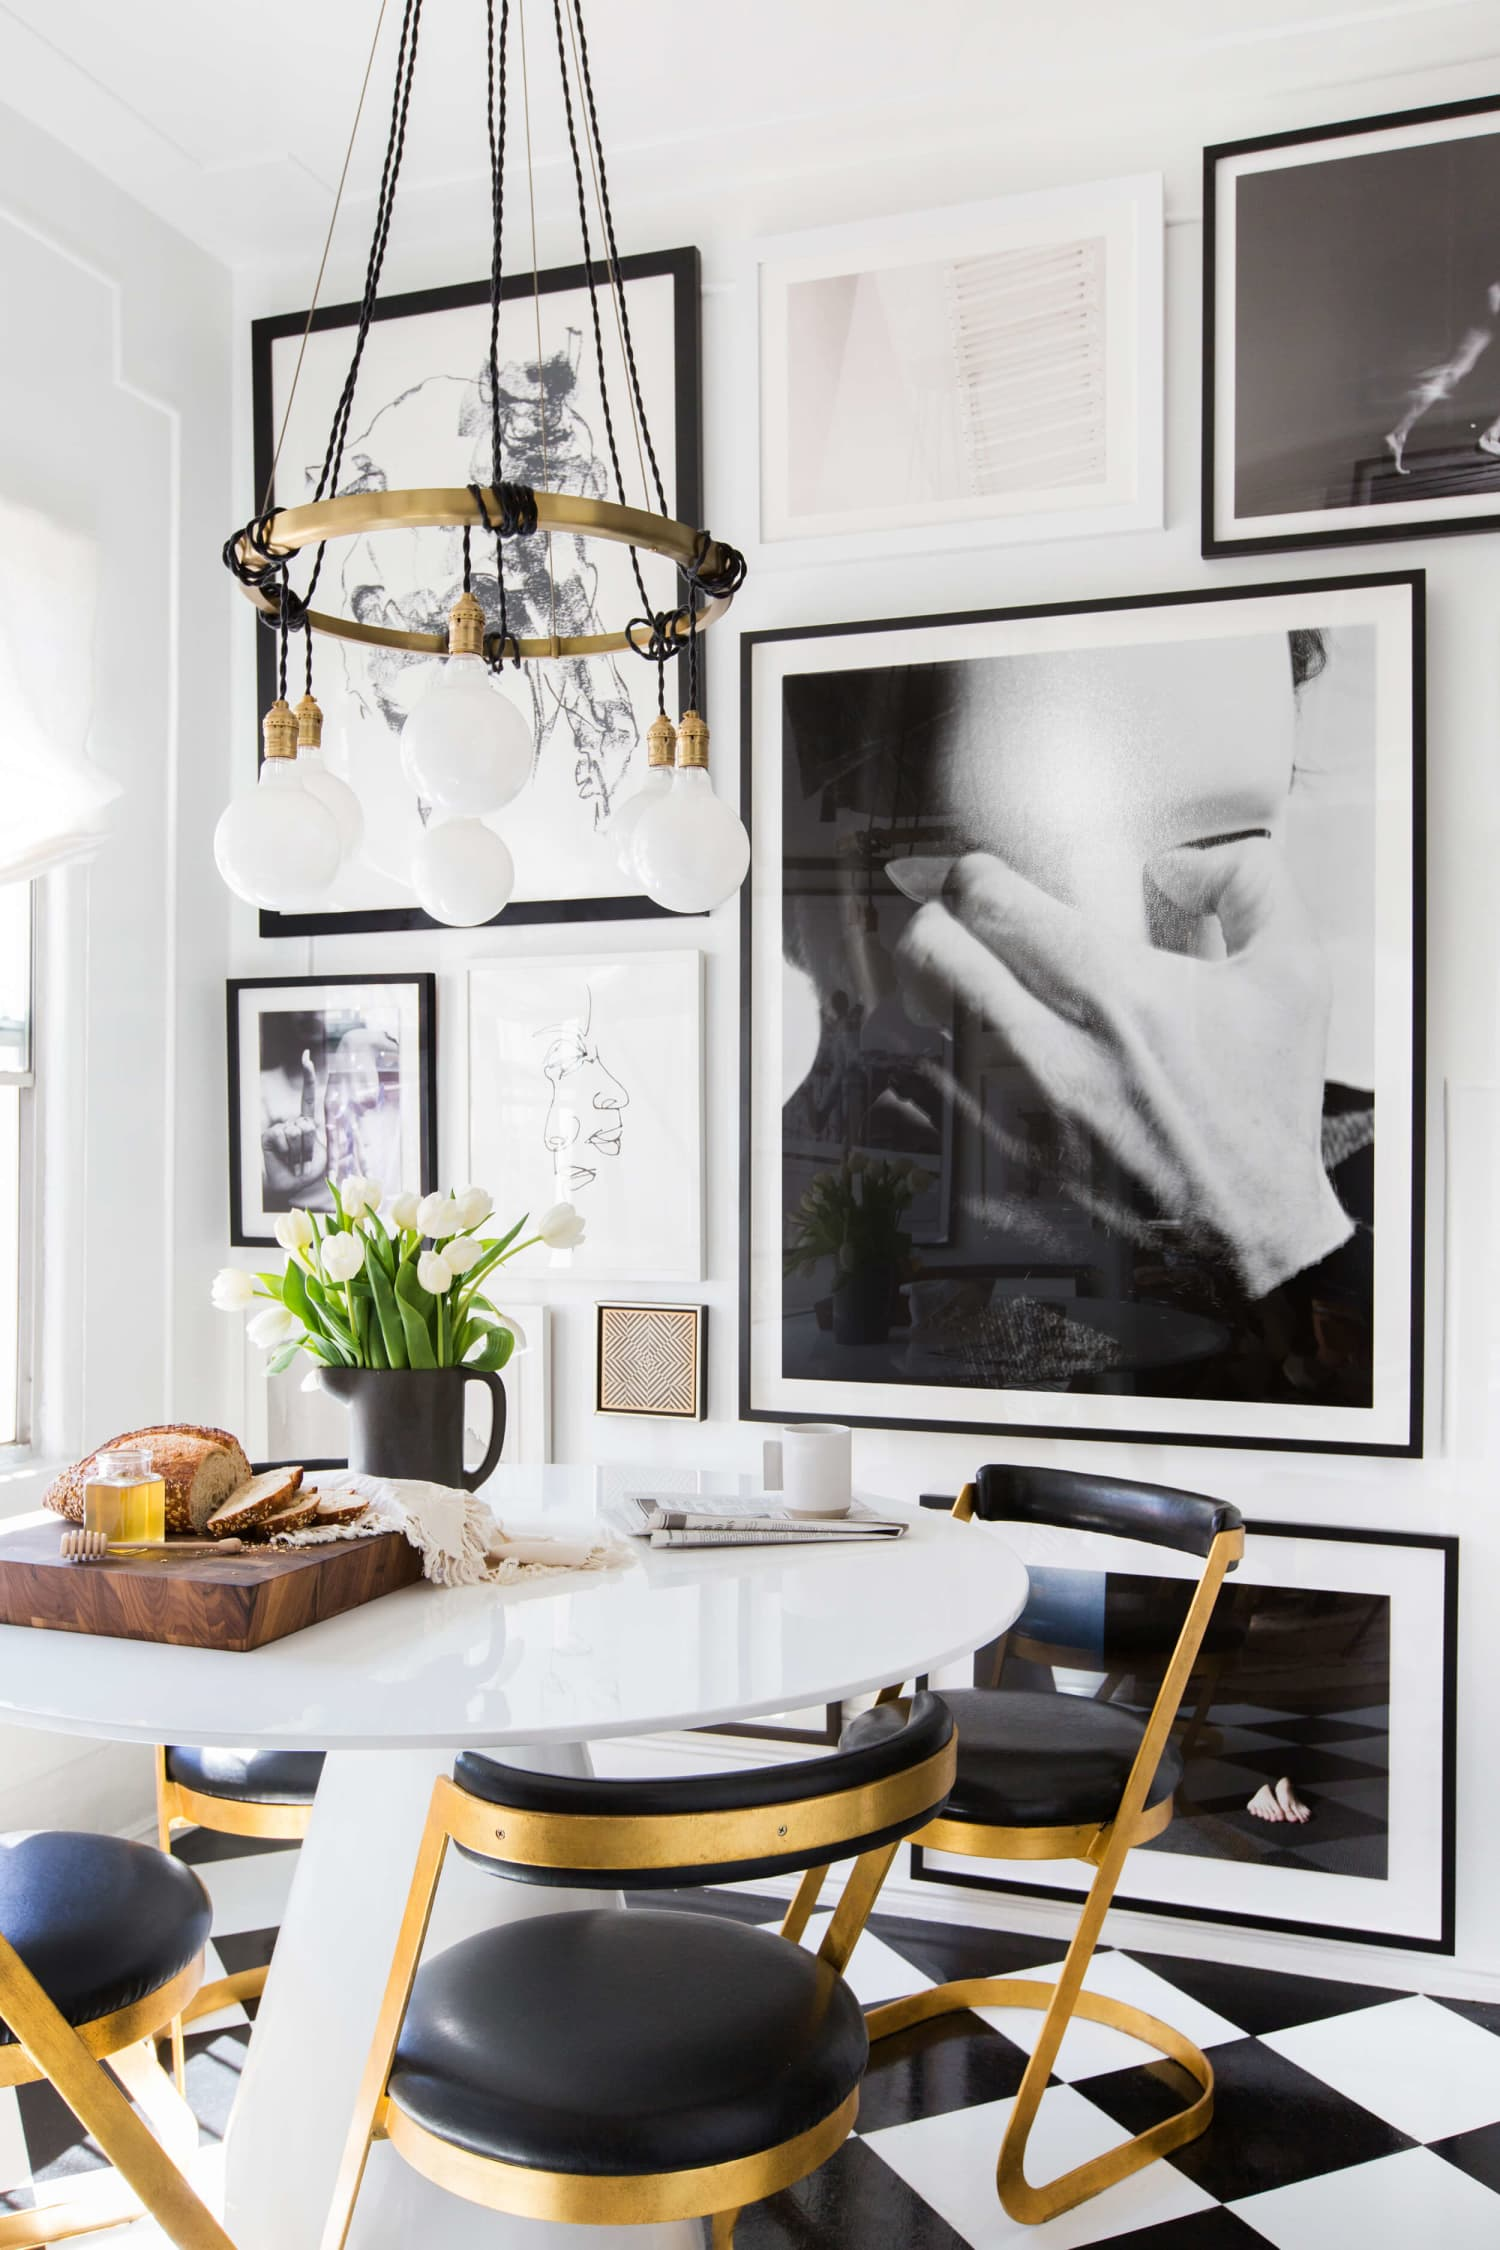 Unexpected Displays that Will Make You Rethink Your Art Arrangements